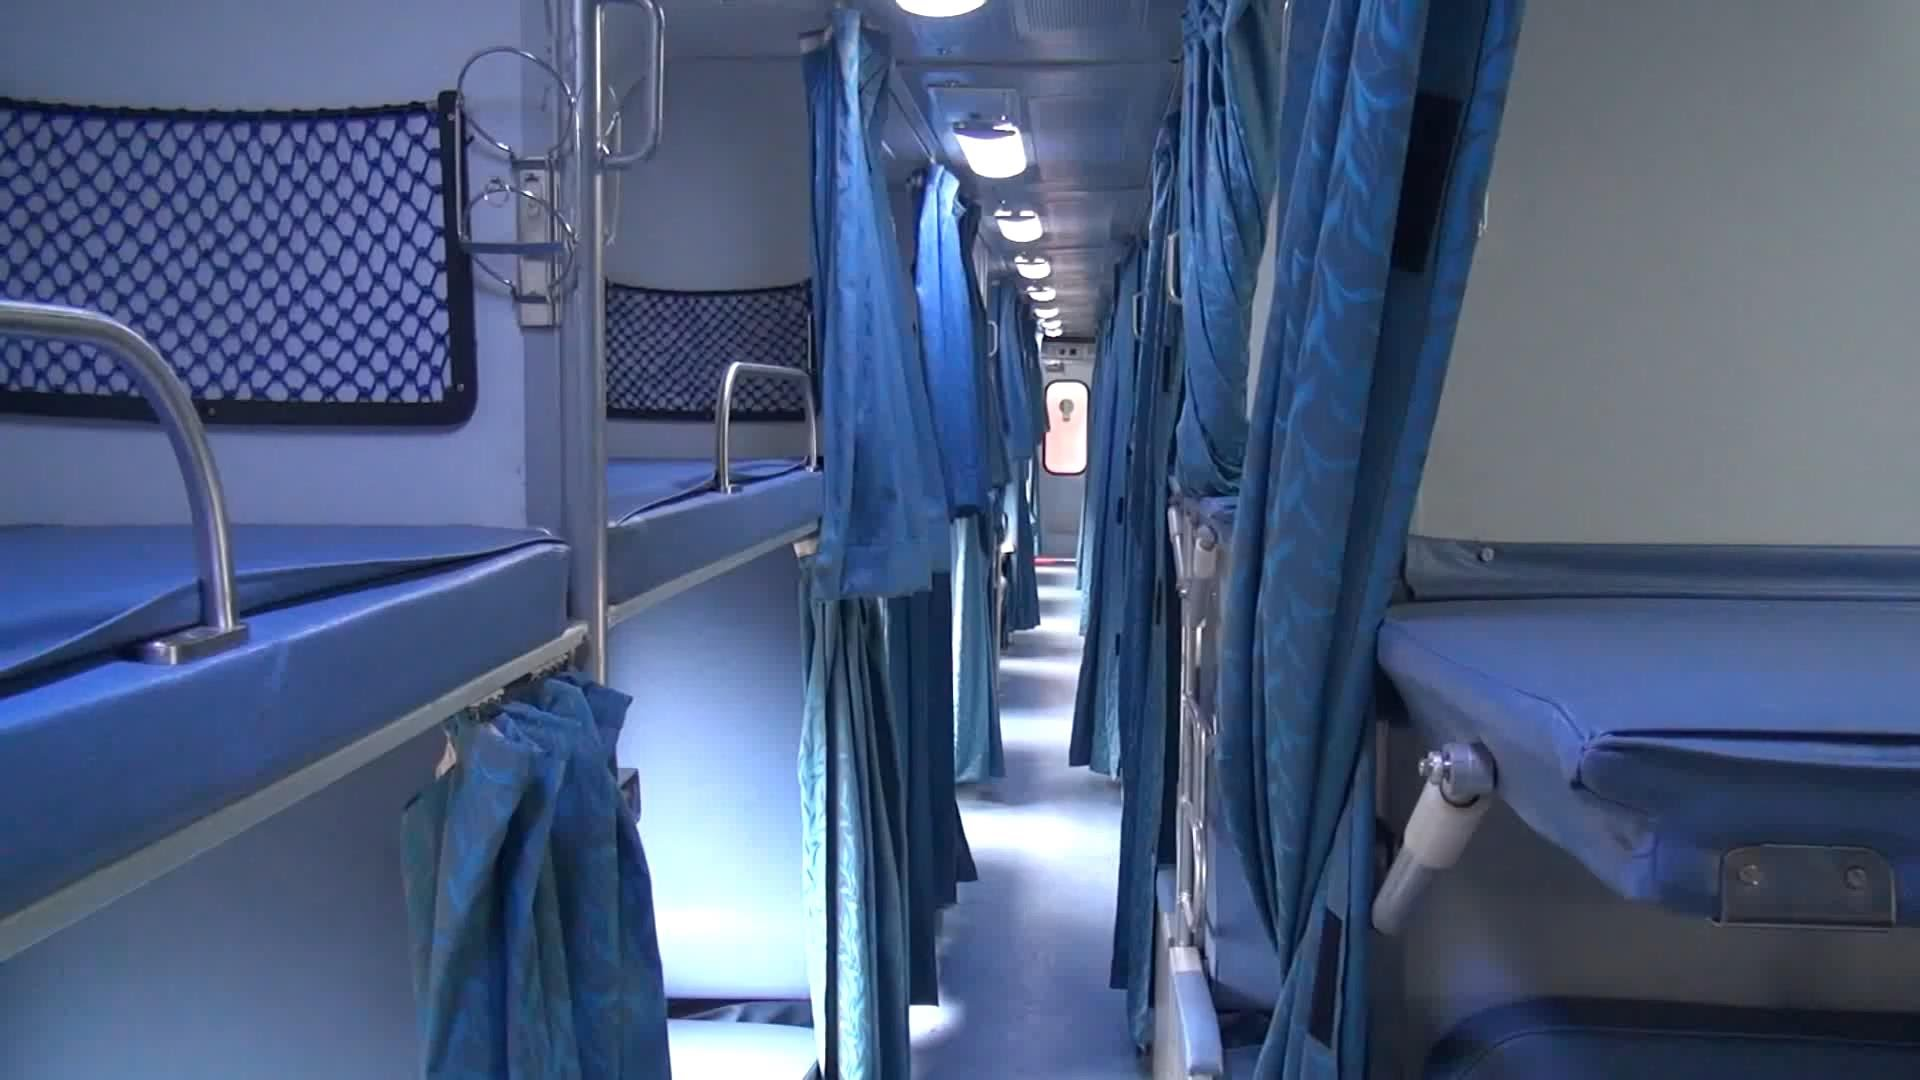 how to know berth position in train